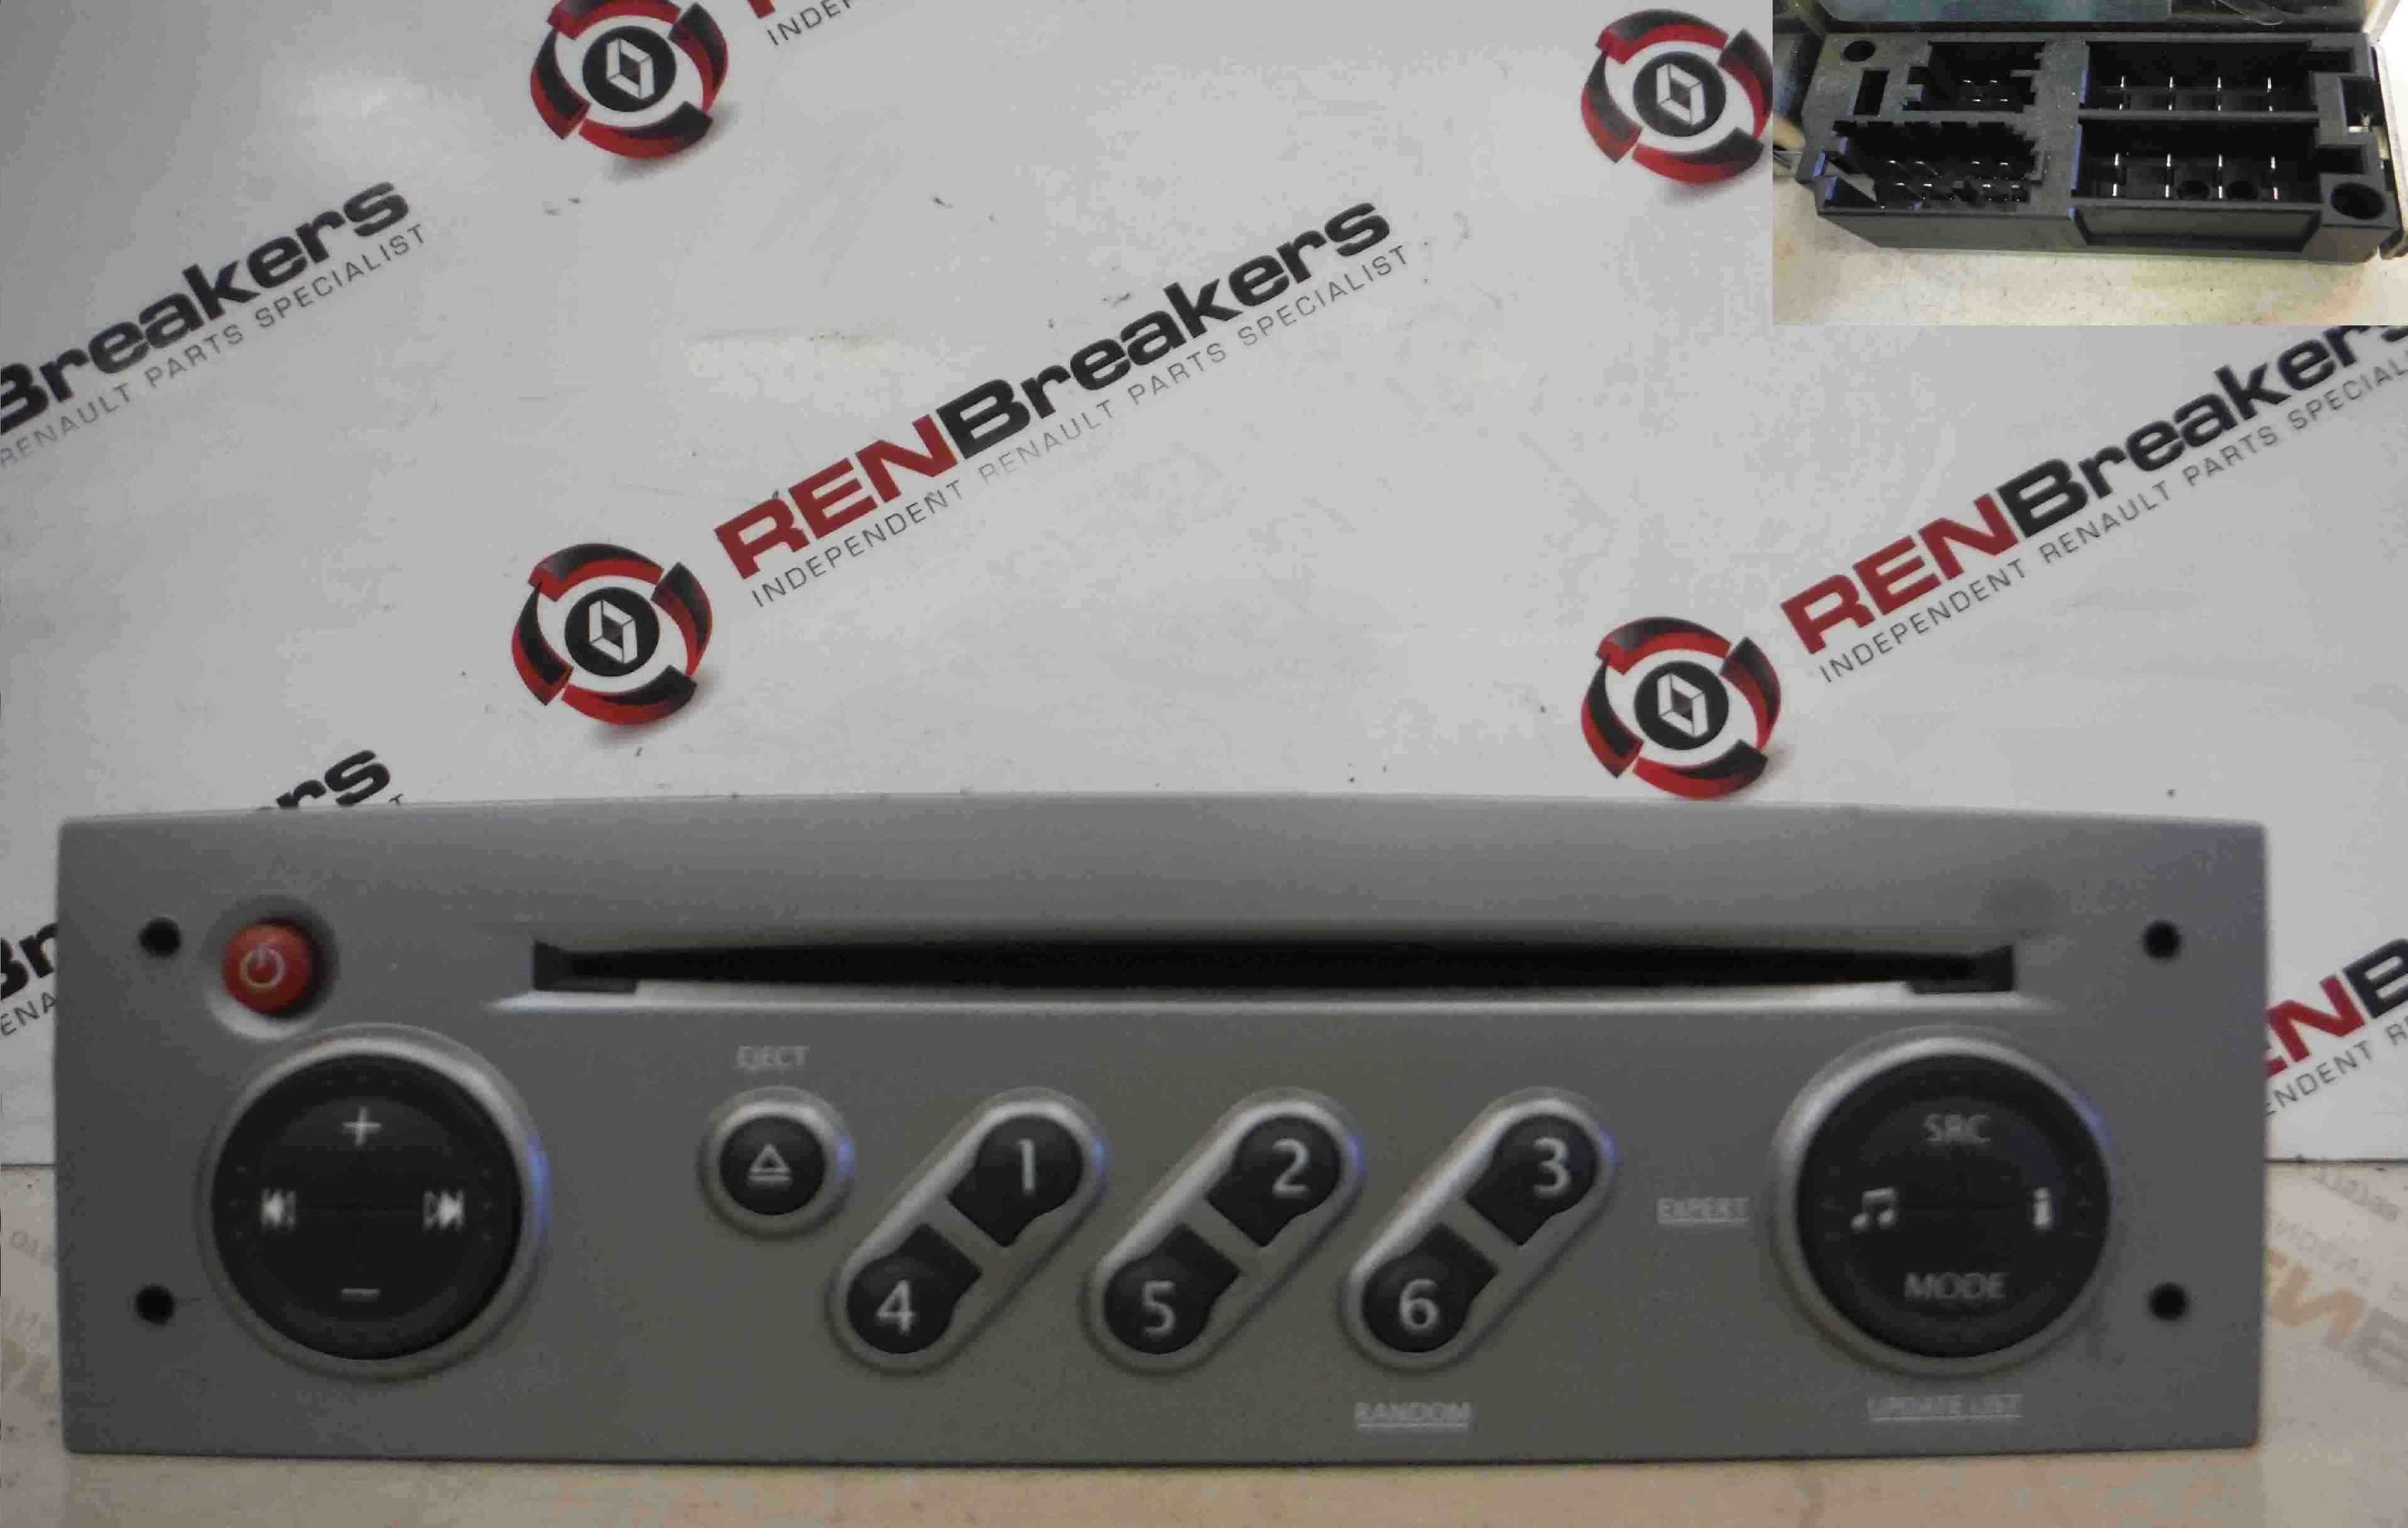 renault clio mk3 2005 2012 radio cd player update list code silver store renault breakers. Black Bedroom Furniture Sets. Home Design Ideas